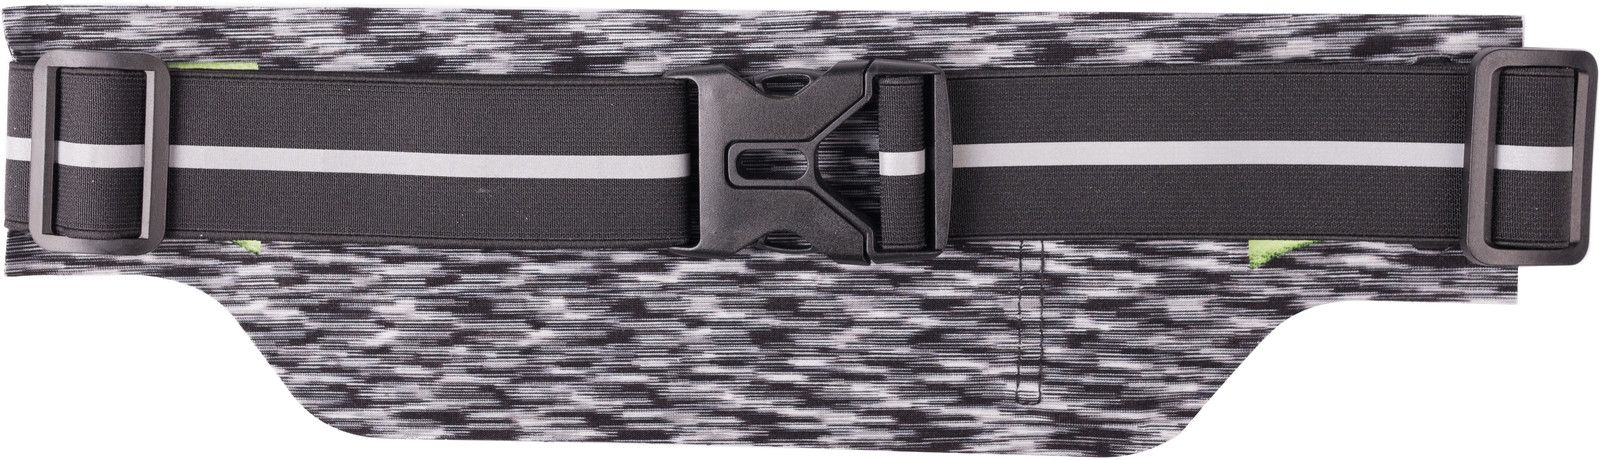 Gear Sports Belt (iPhone)